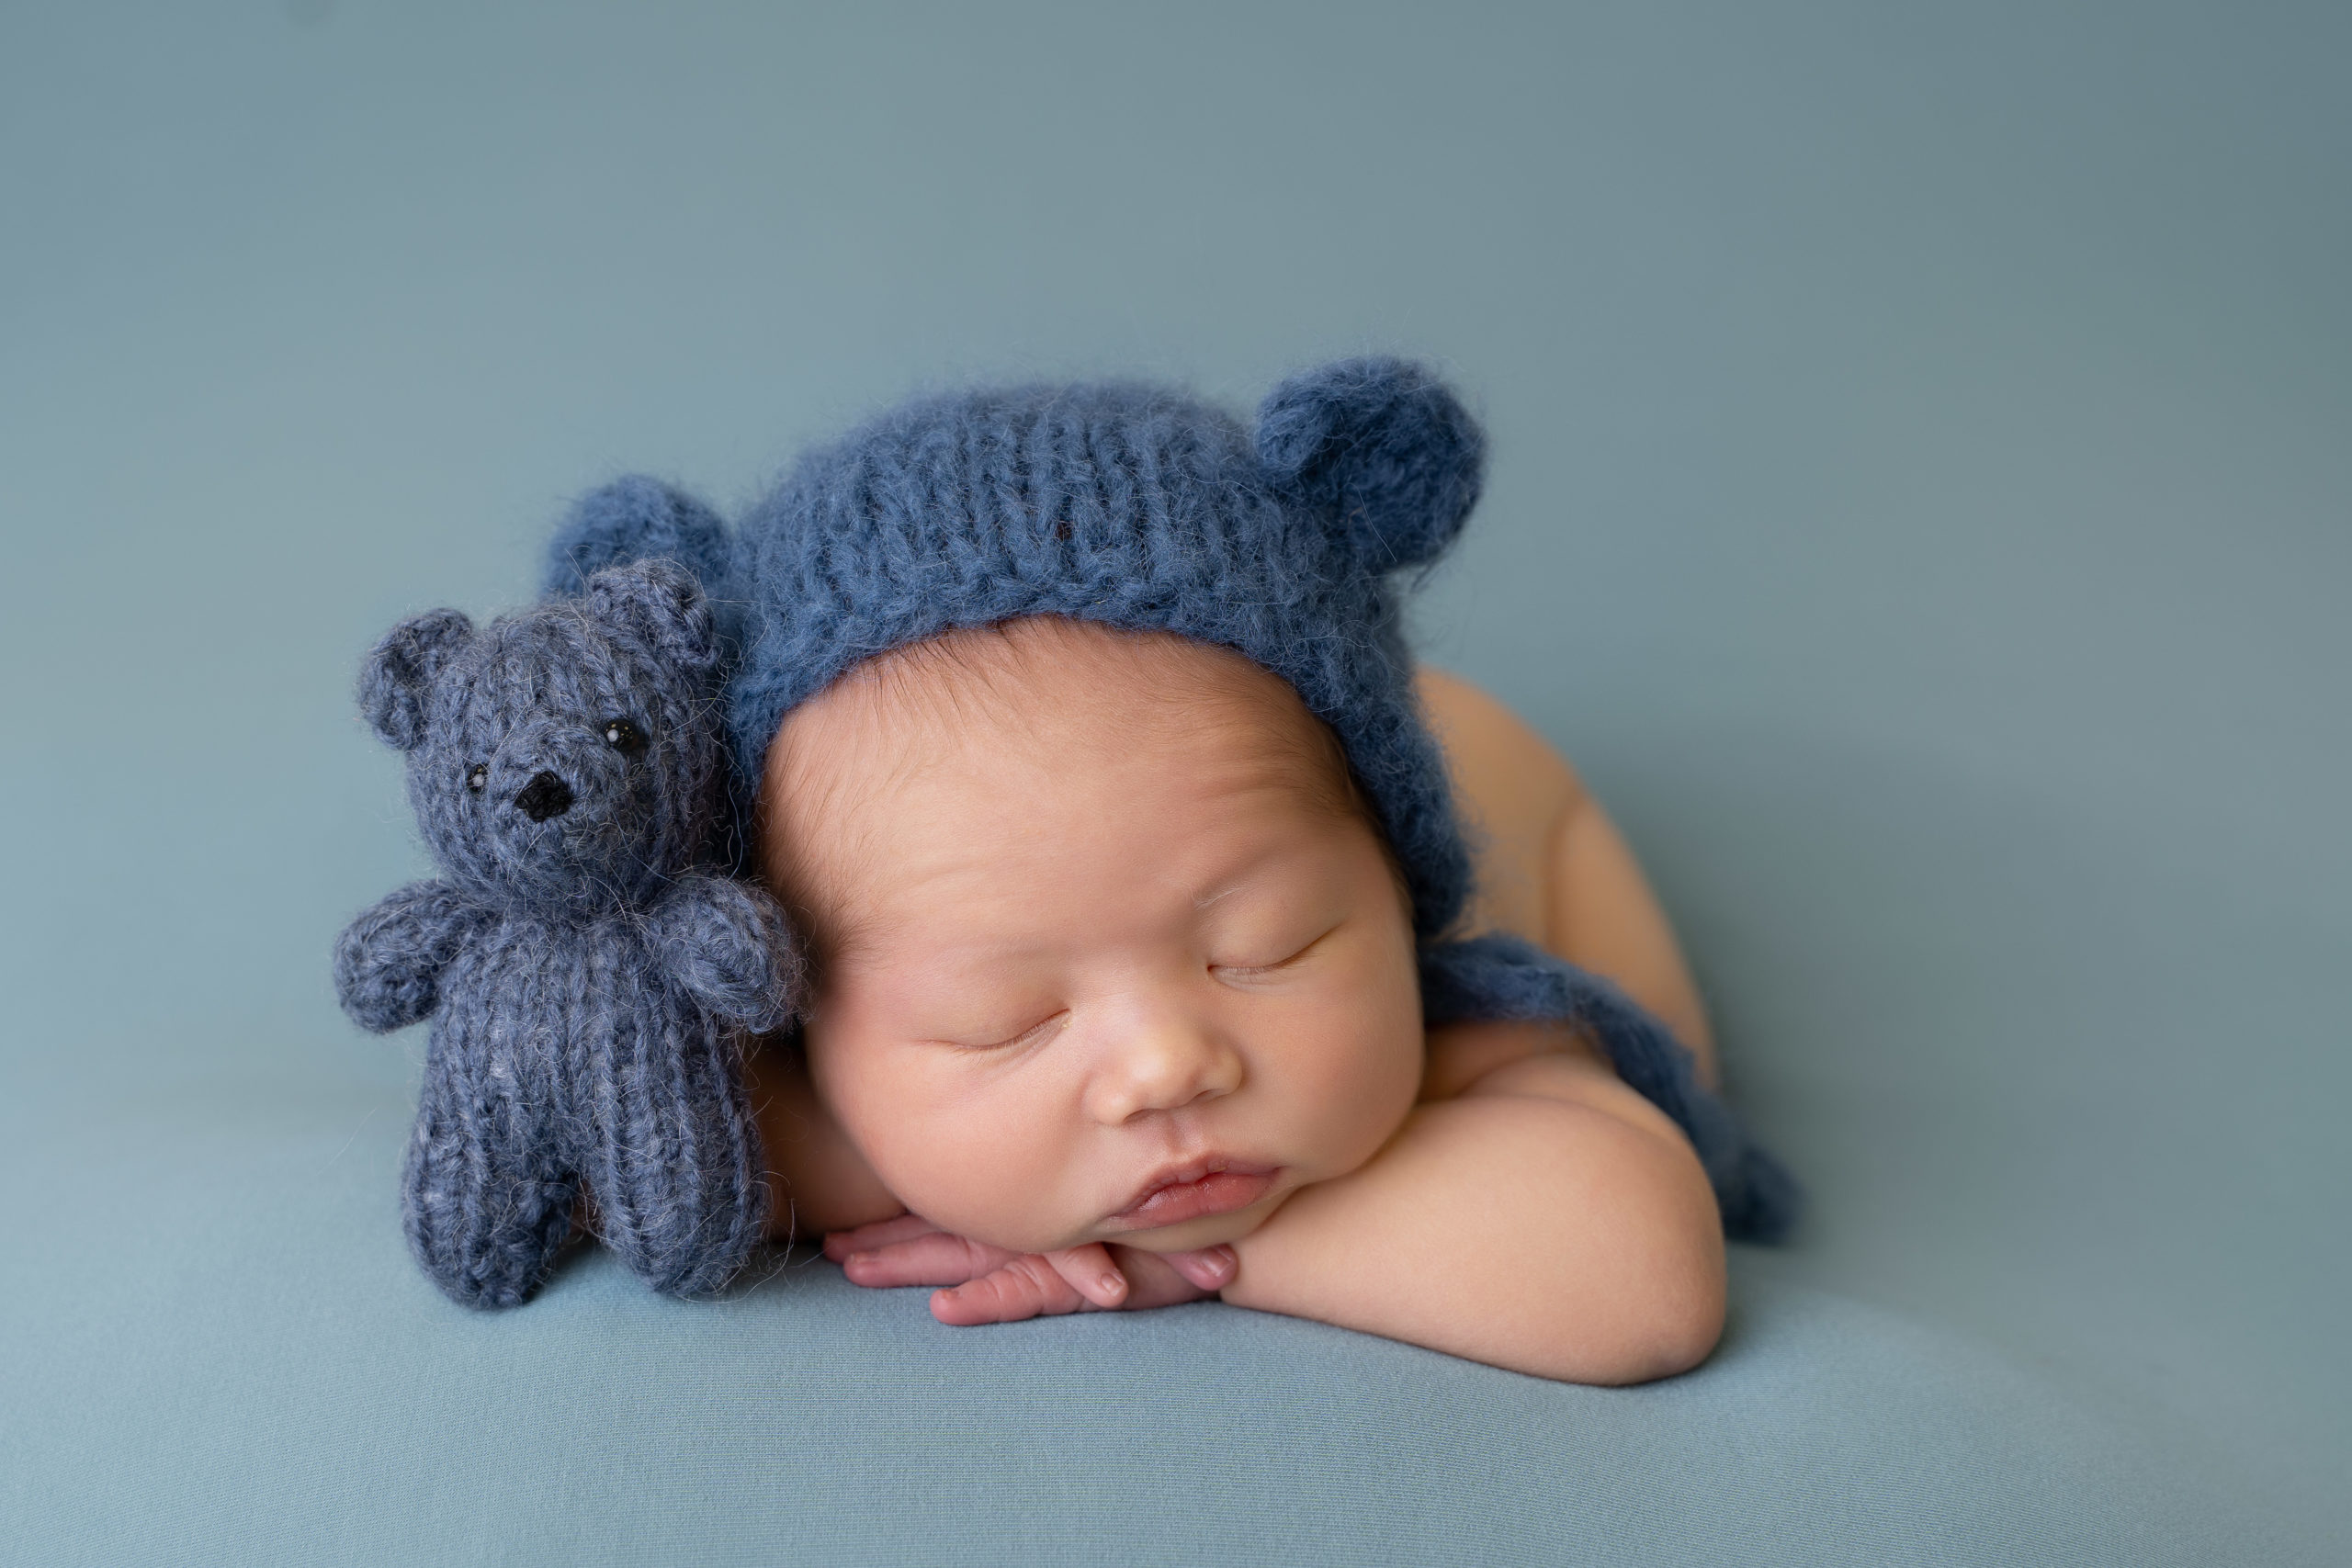 professional newborn photo of newborn baby posed on teal blanket by newborn photographer edinburgh beautiful bairns